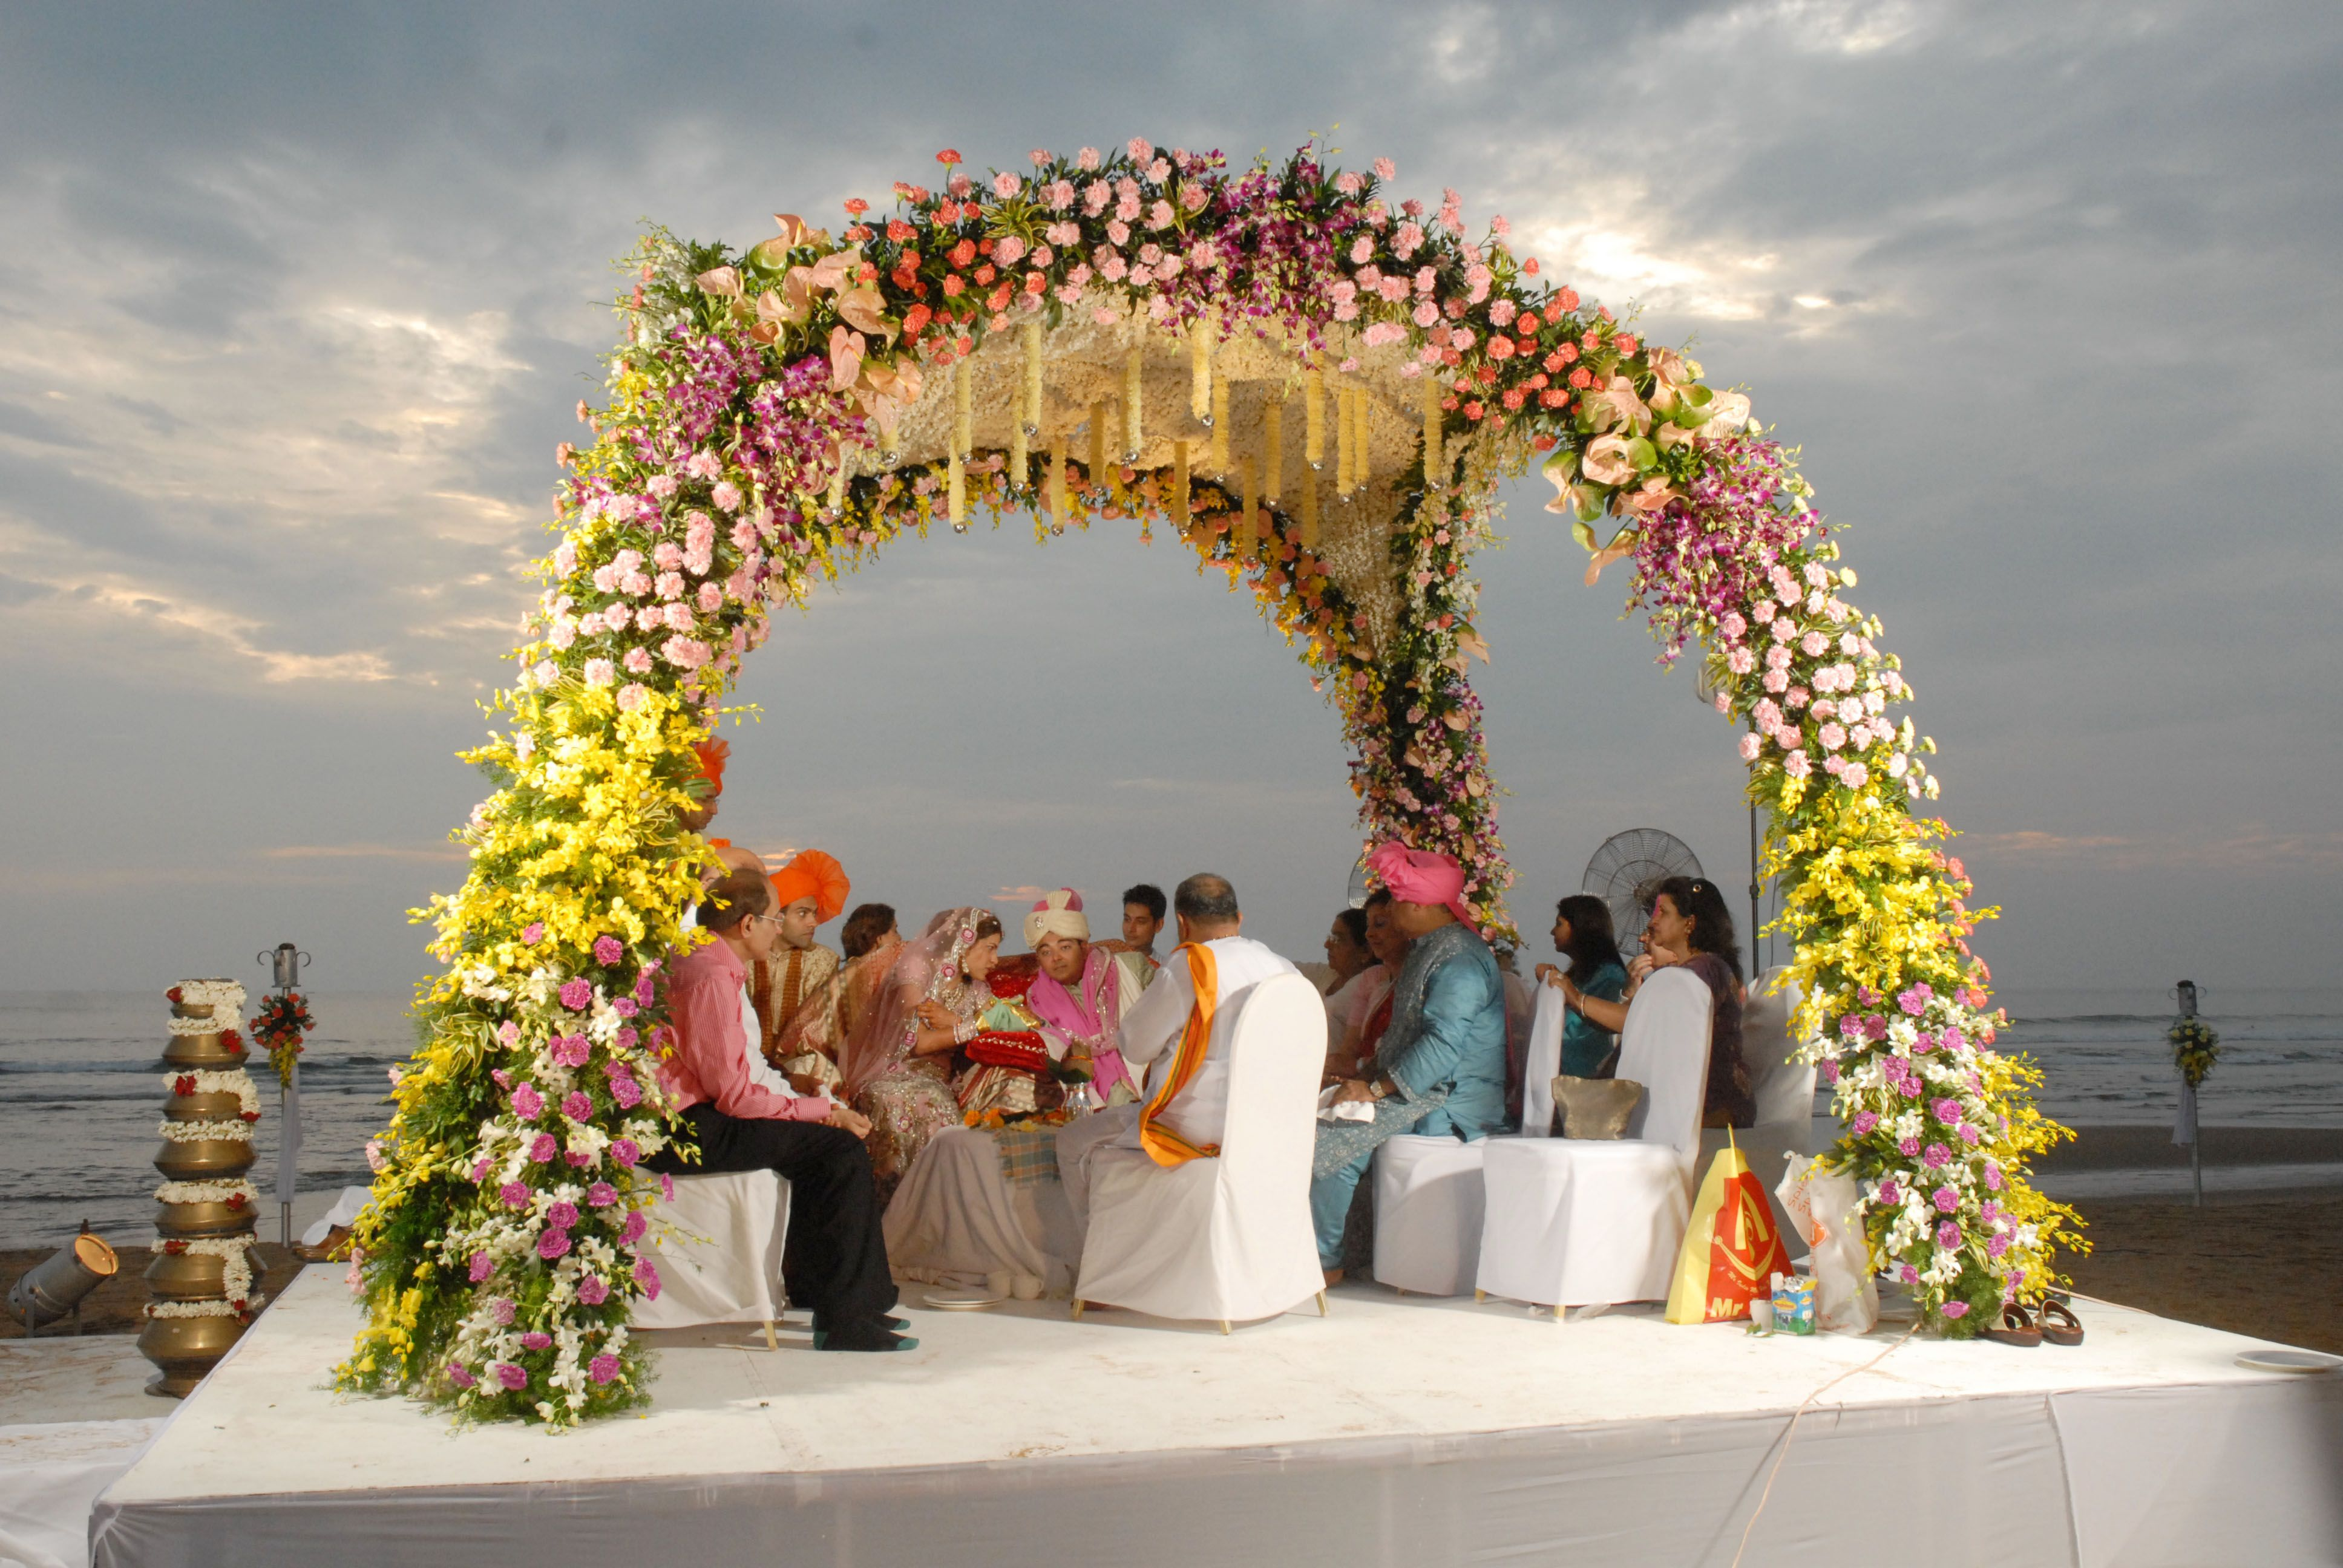 Cheap flights to goa from london goa cheap flights and destinations goa among the hottest destinations across the world for a themed destination wedding book budget flights to goa from us travel incredibleindia junglespirit Image collections